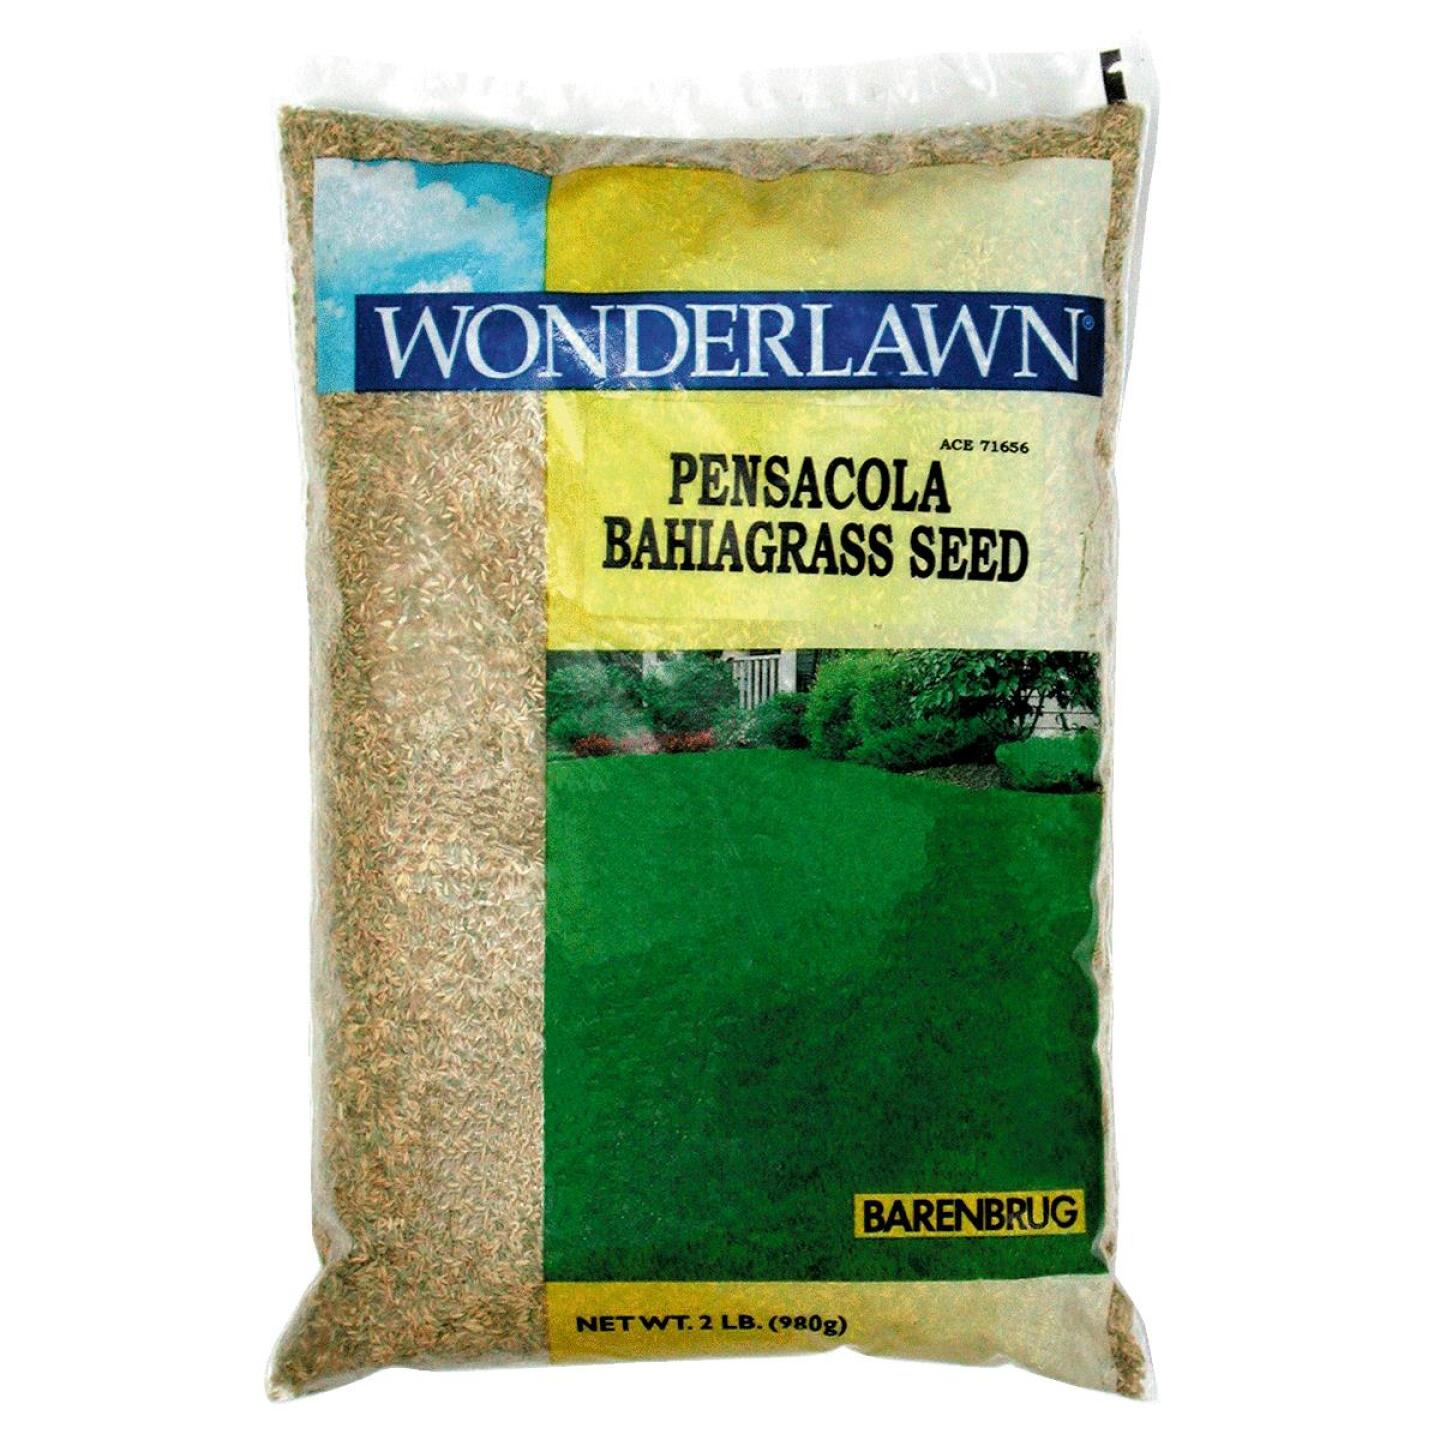 Wonderlawn 2 Lb. 450 Sq. Ft. Coverage 100% Pensacola Bahiagrass Grass Seed Image 1